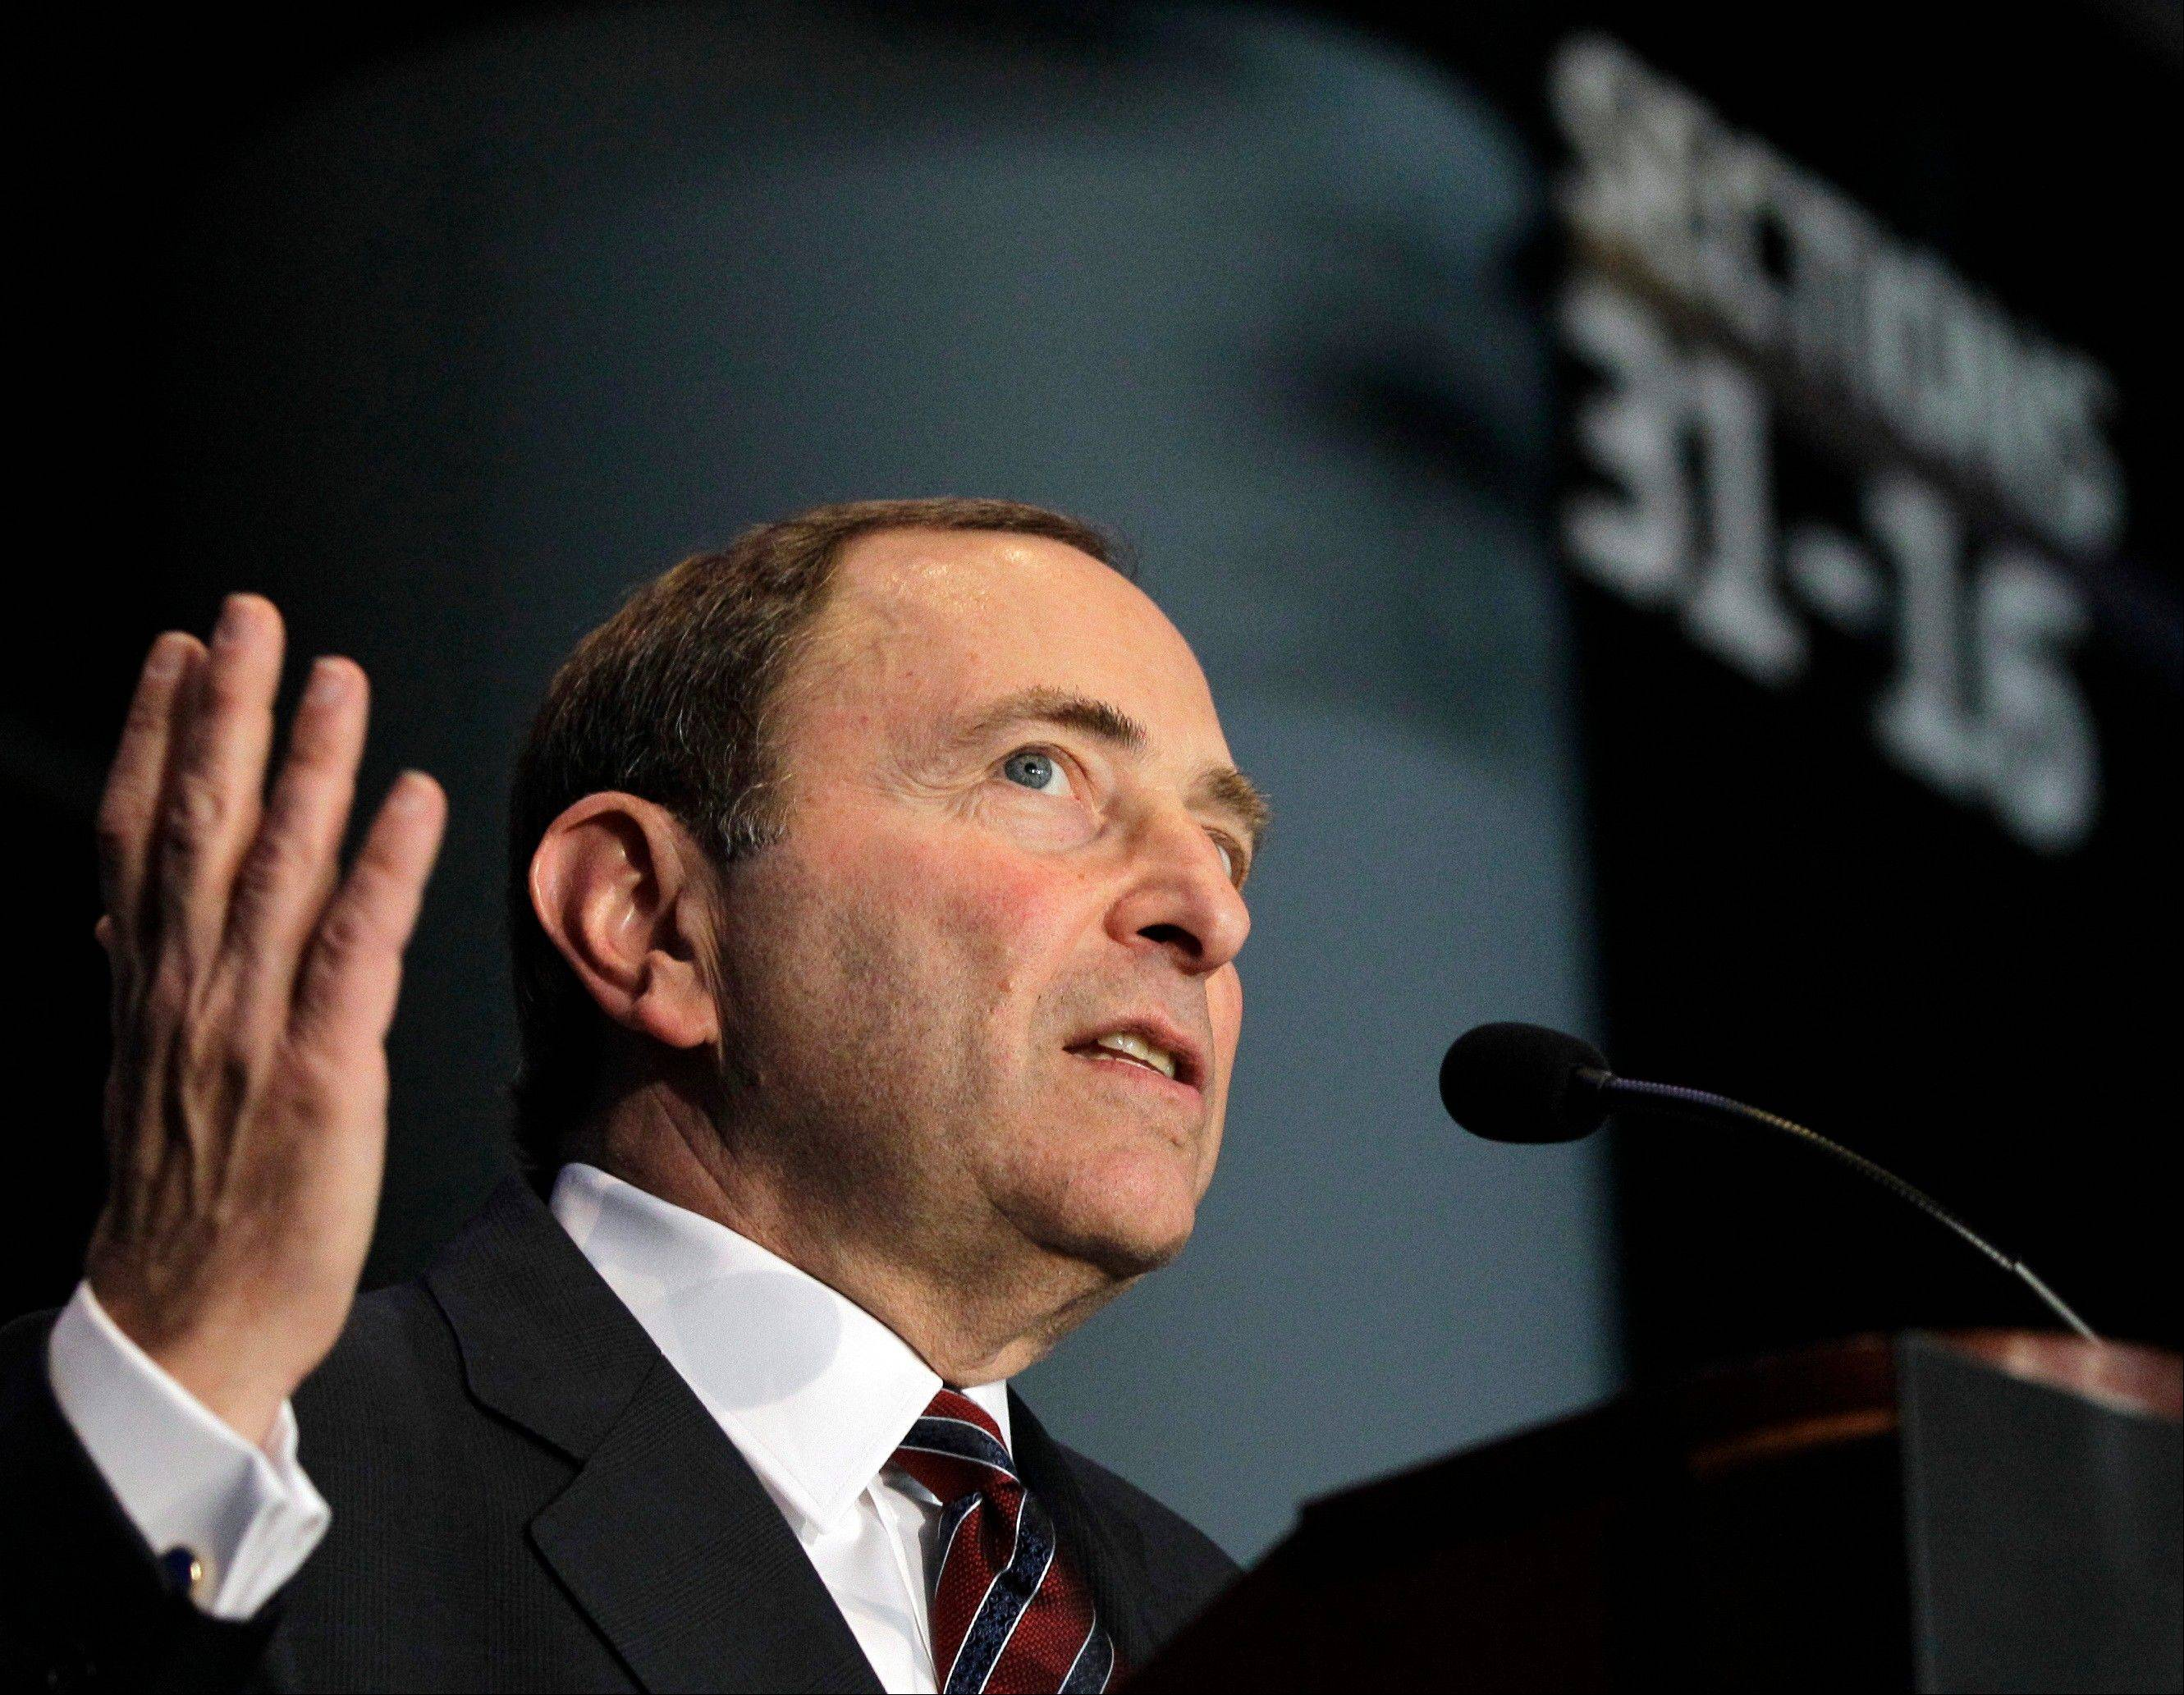 National Hockey League Commissioner Gary Bettman speaks Wednesday during a news conference in New York announcing that the Islanders hockey club will move from Nassau Veterans Memorial Coliseum in Uniondale, N.Y., to Brooklyn's Barclays Center starting in 2015.